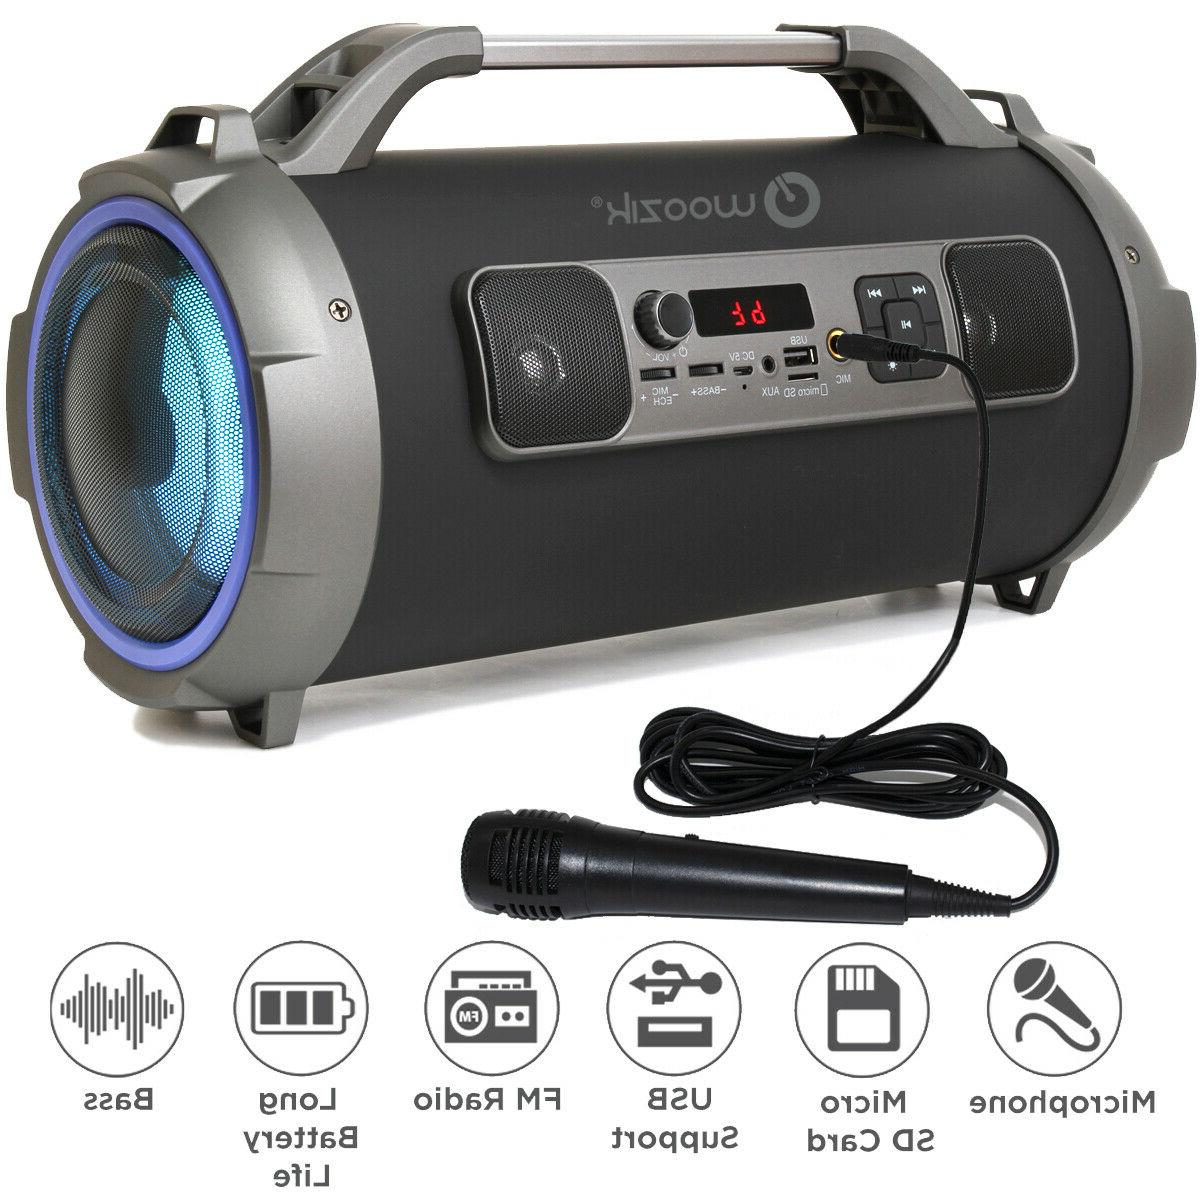 LOUD Wireless Boombox Aux Rechargeable Stereo